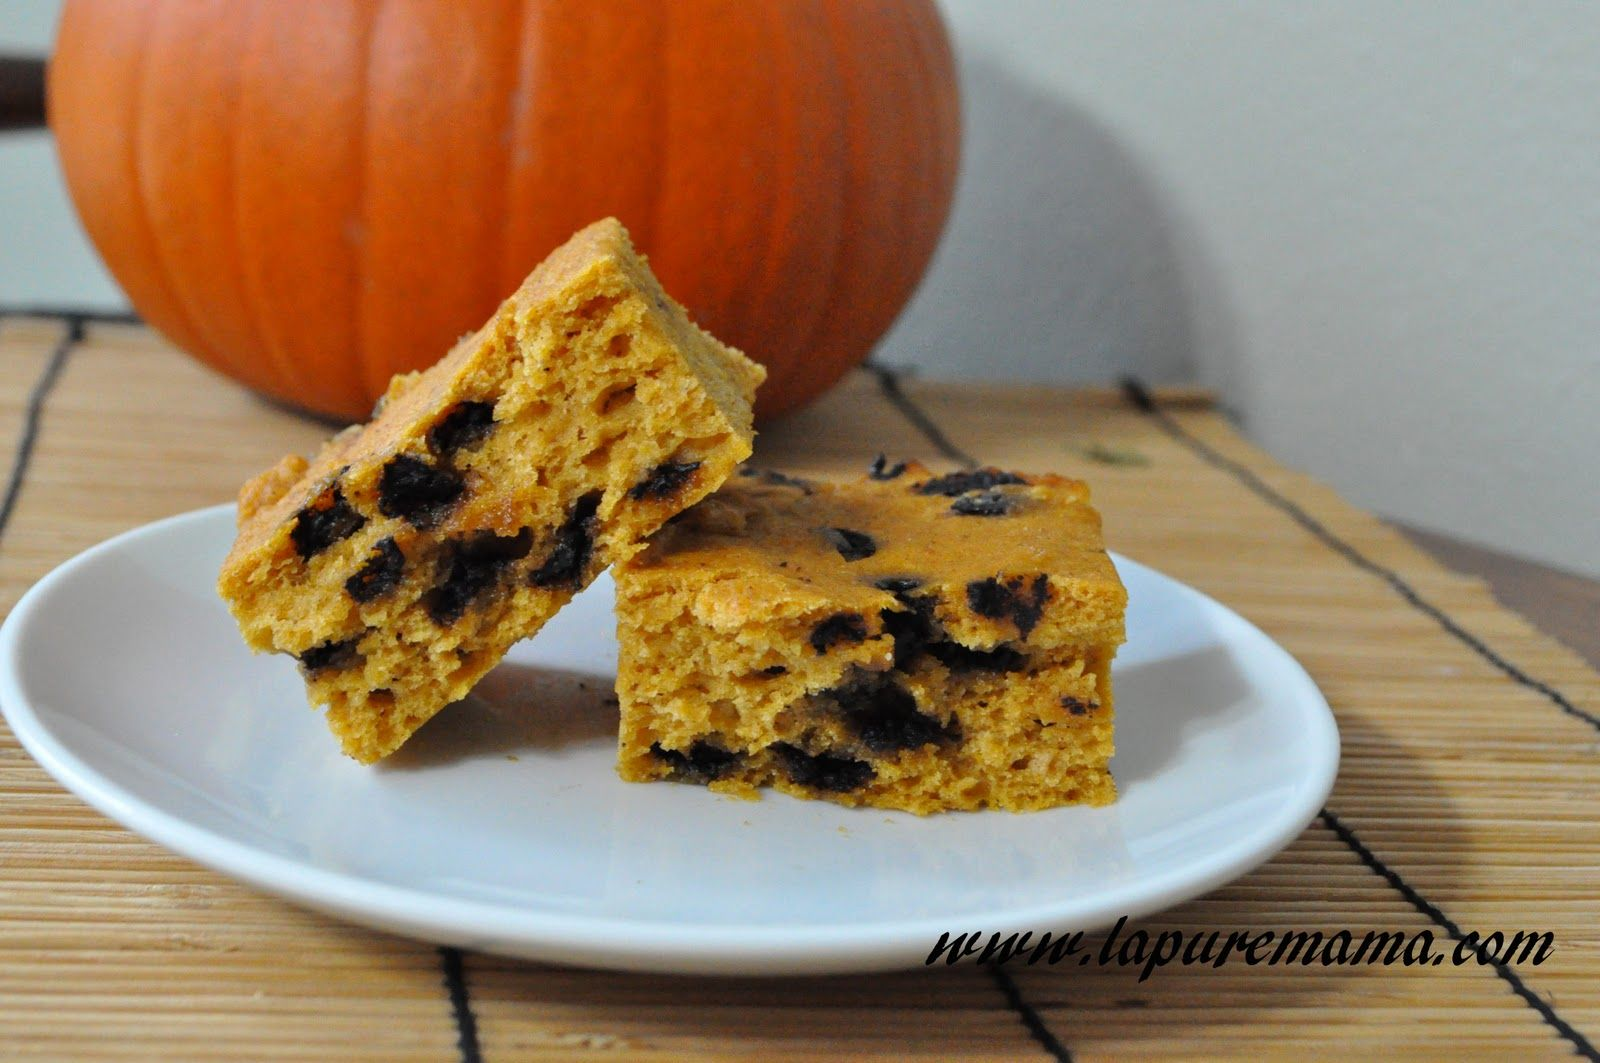 la pure mama.: Vegan Pumpkin Bars